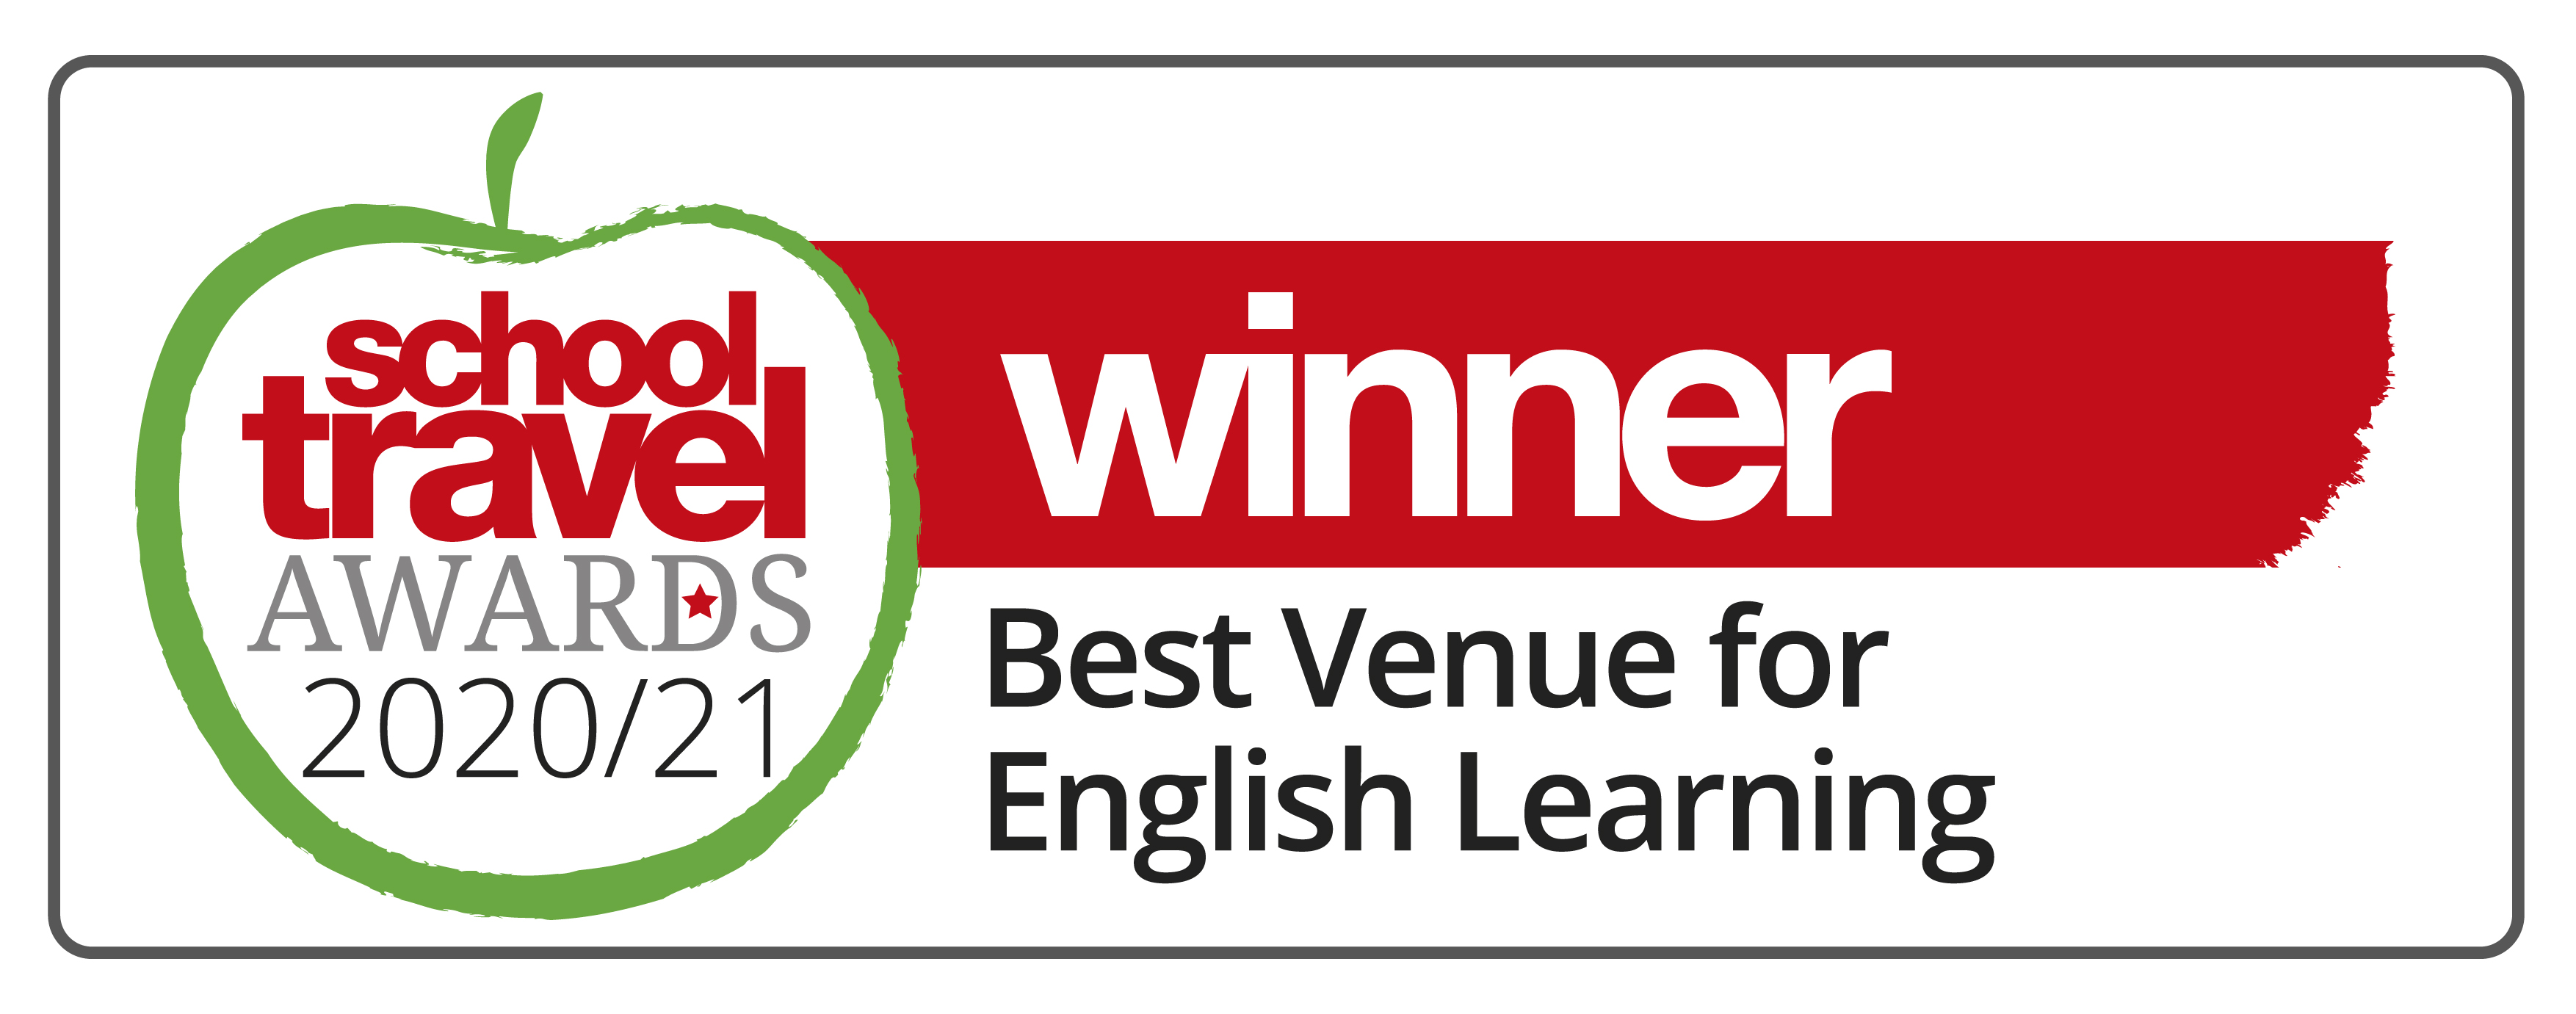 [IMAGE] School Travel Awards 2020/21 logo with text reading: Winner - Best Venue for English Learning